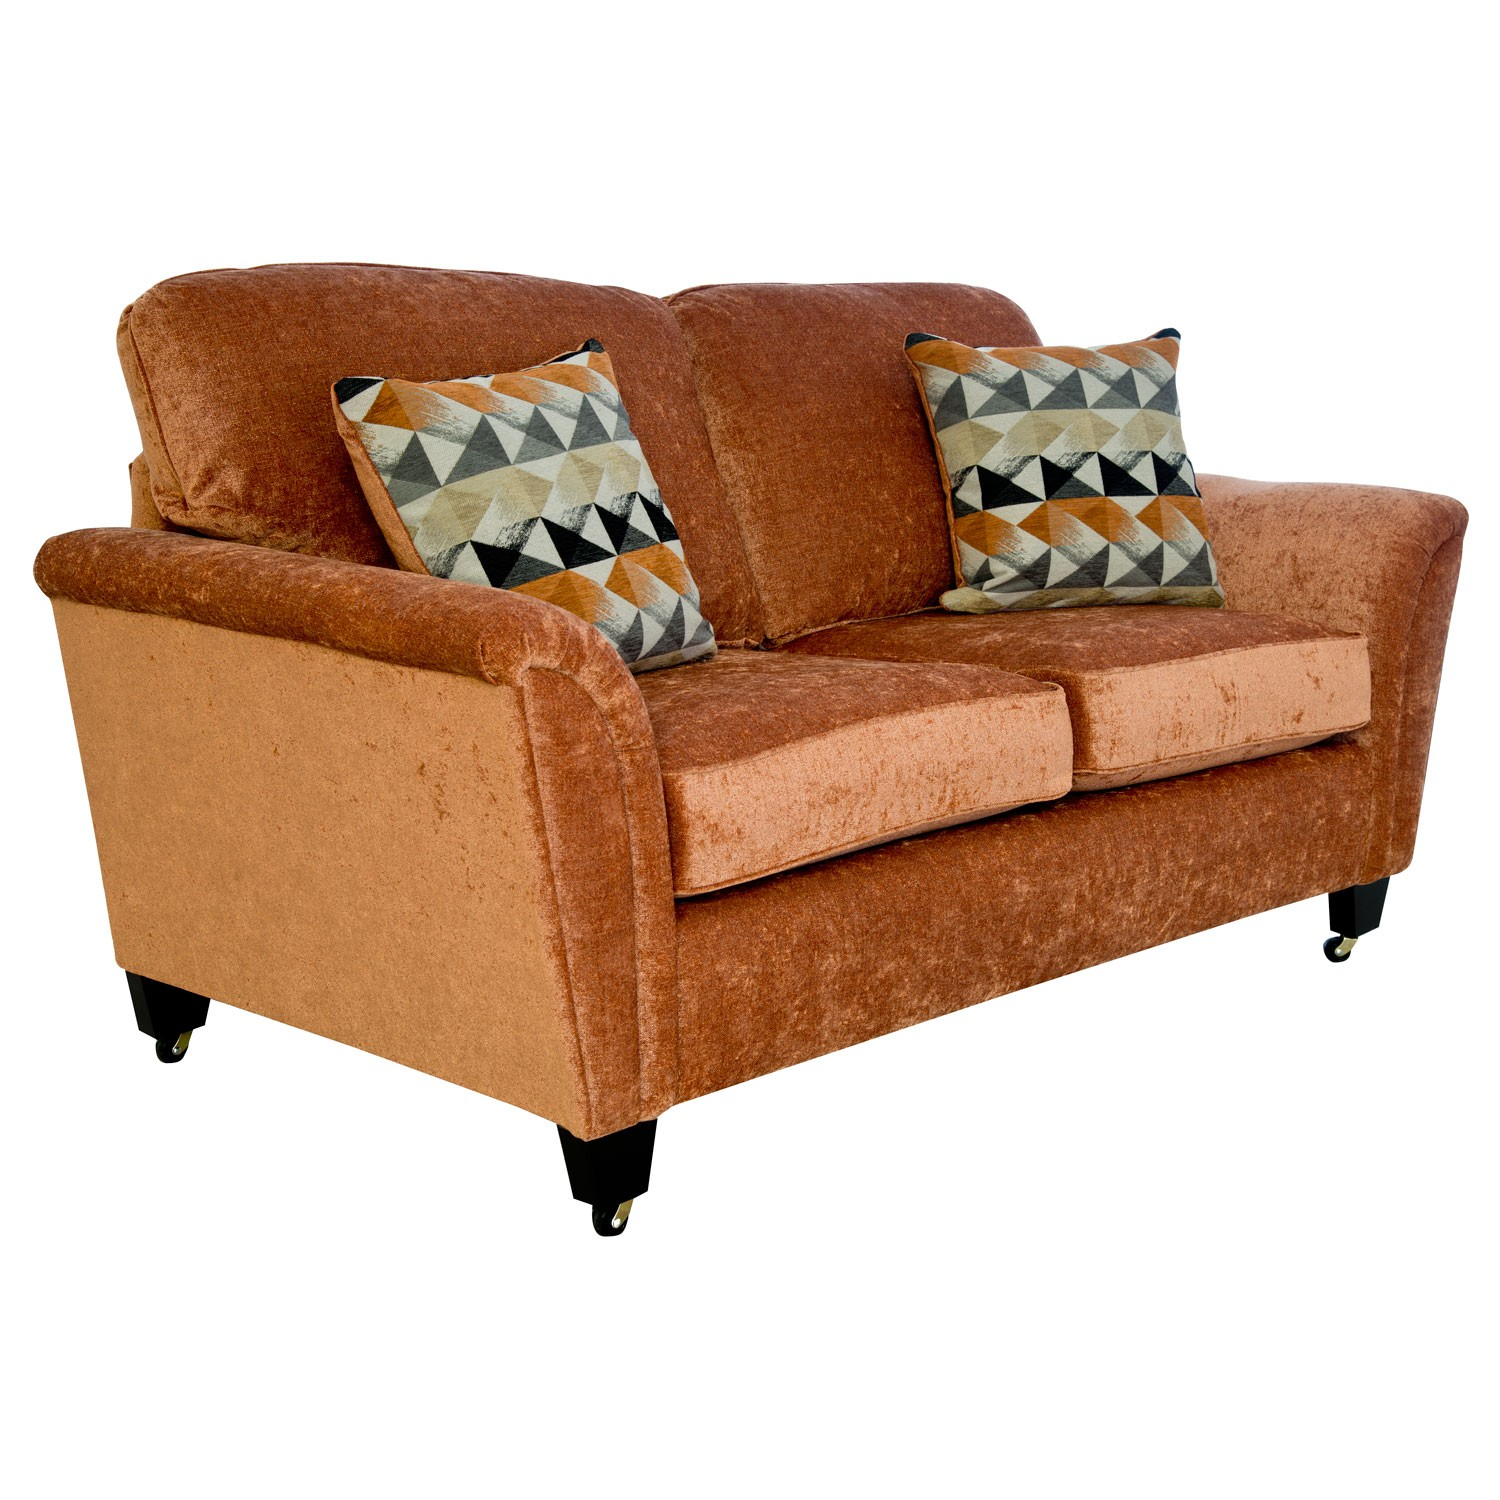 Barcelona two seater sofa for Sofa 8 seater